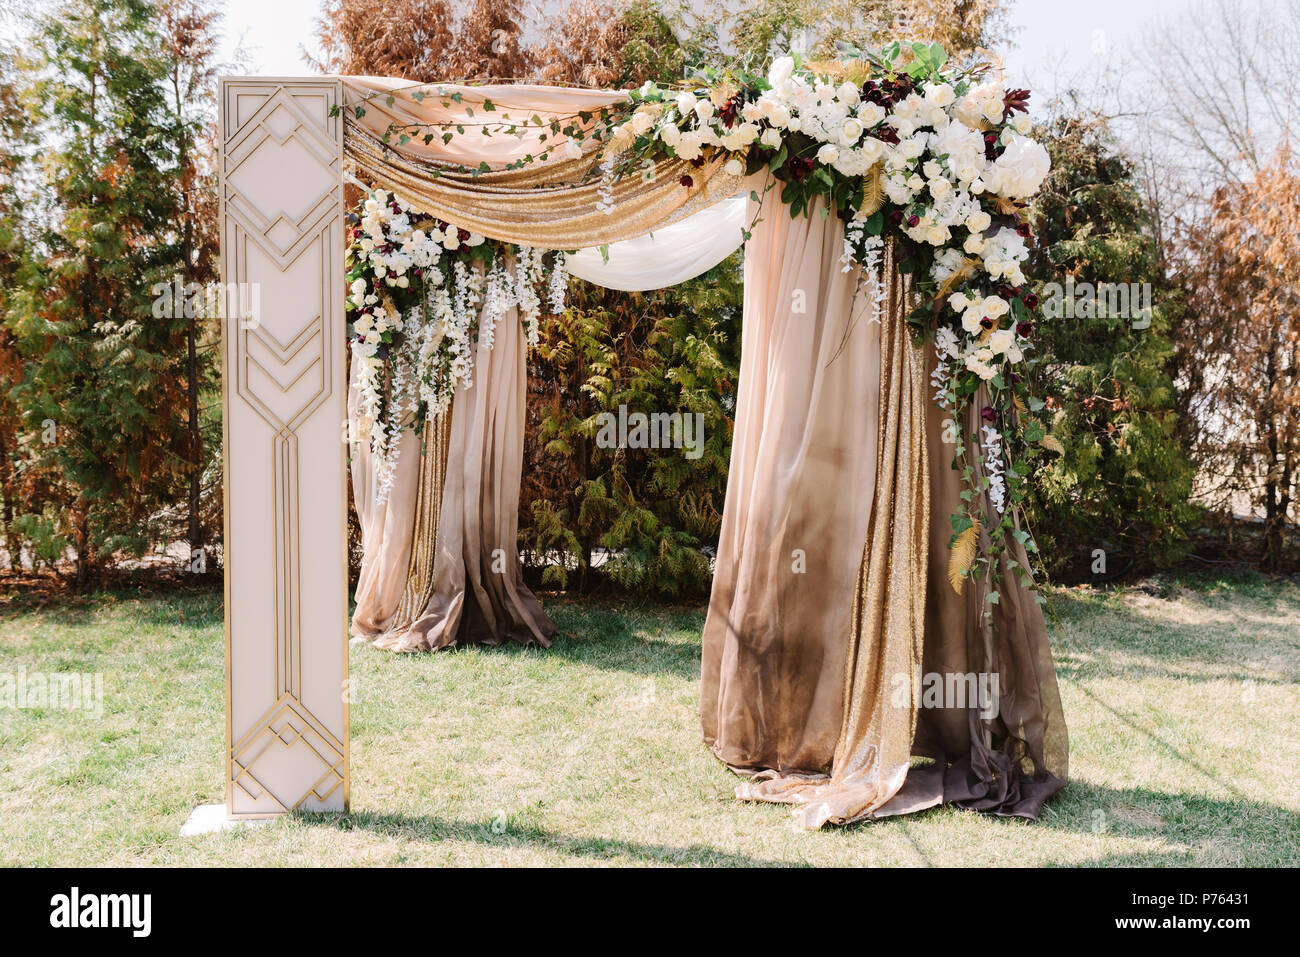 Magnificent wedding arch for a wedding ceremony. The square arch ...